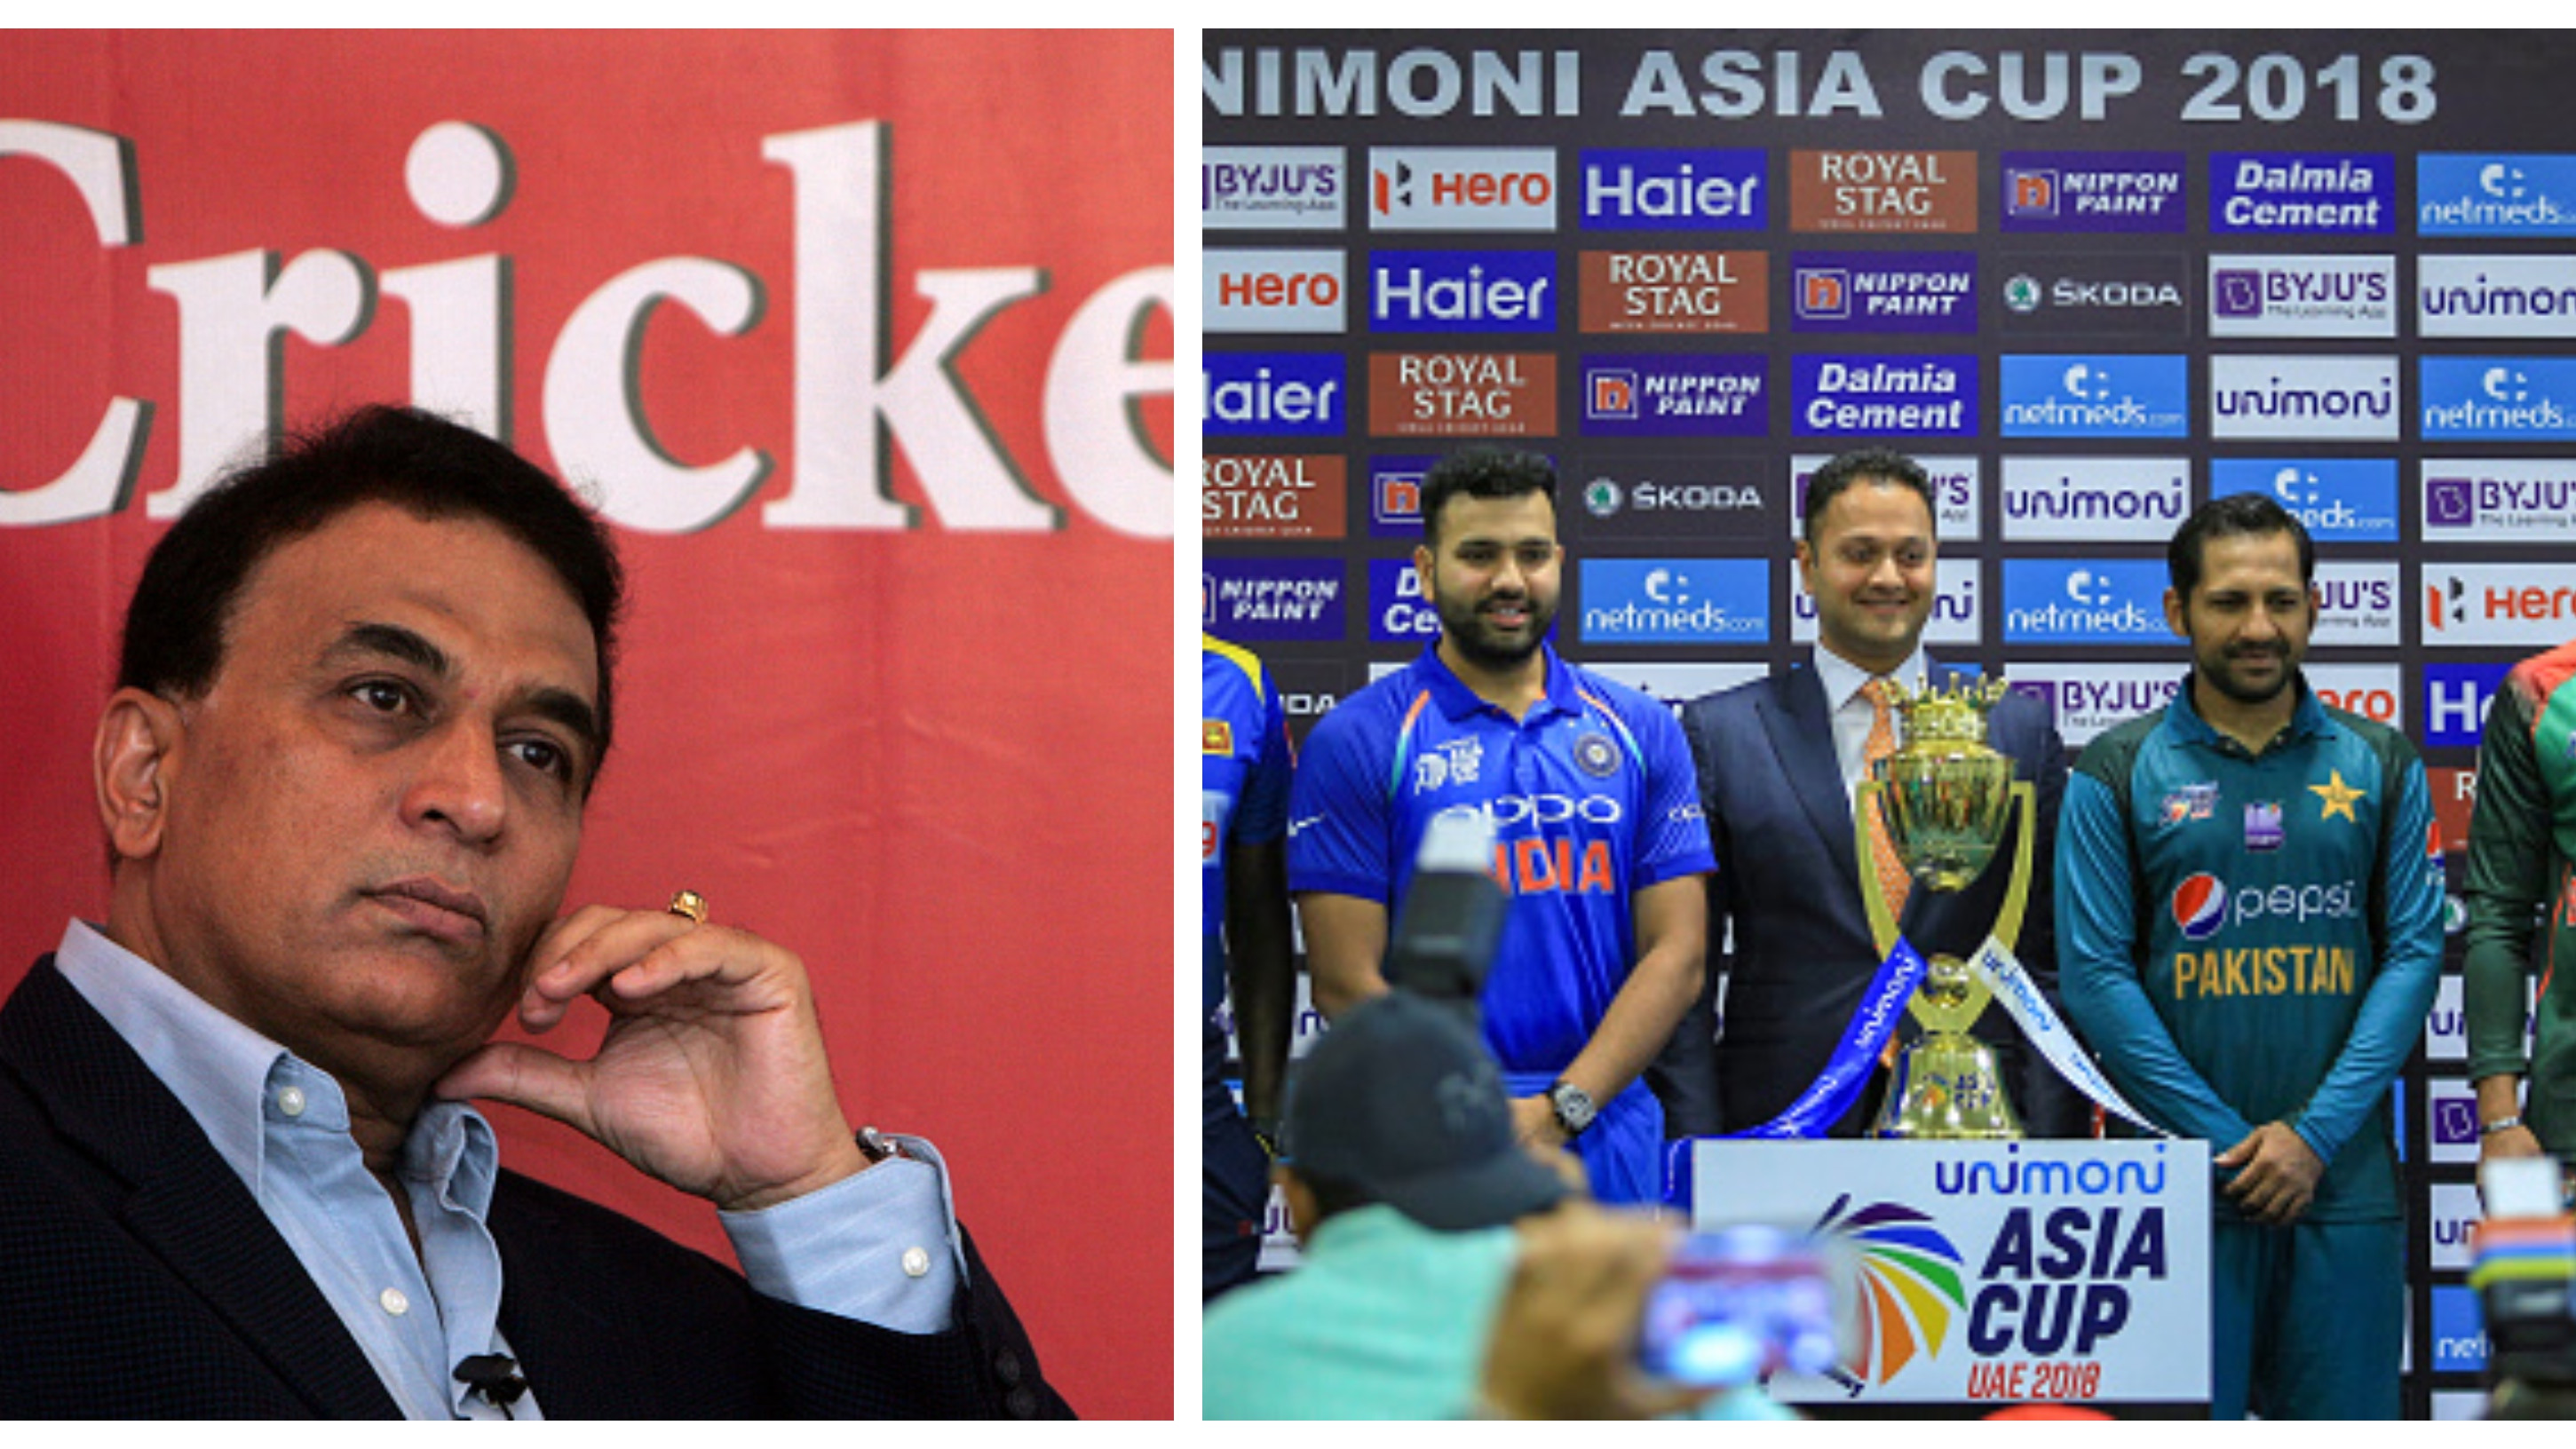 Asia Cup 2018: Sunil Gavaskar picks his favourites for the tournament